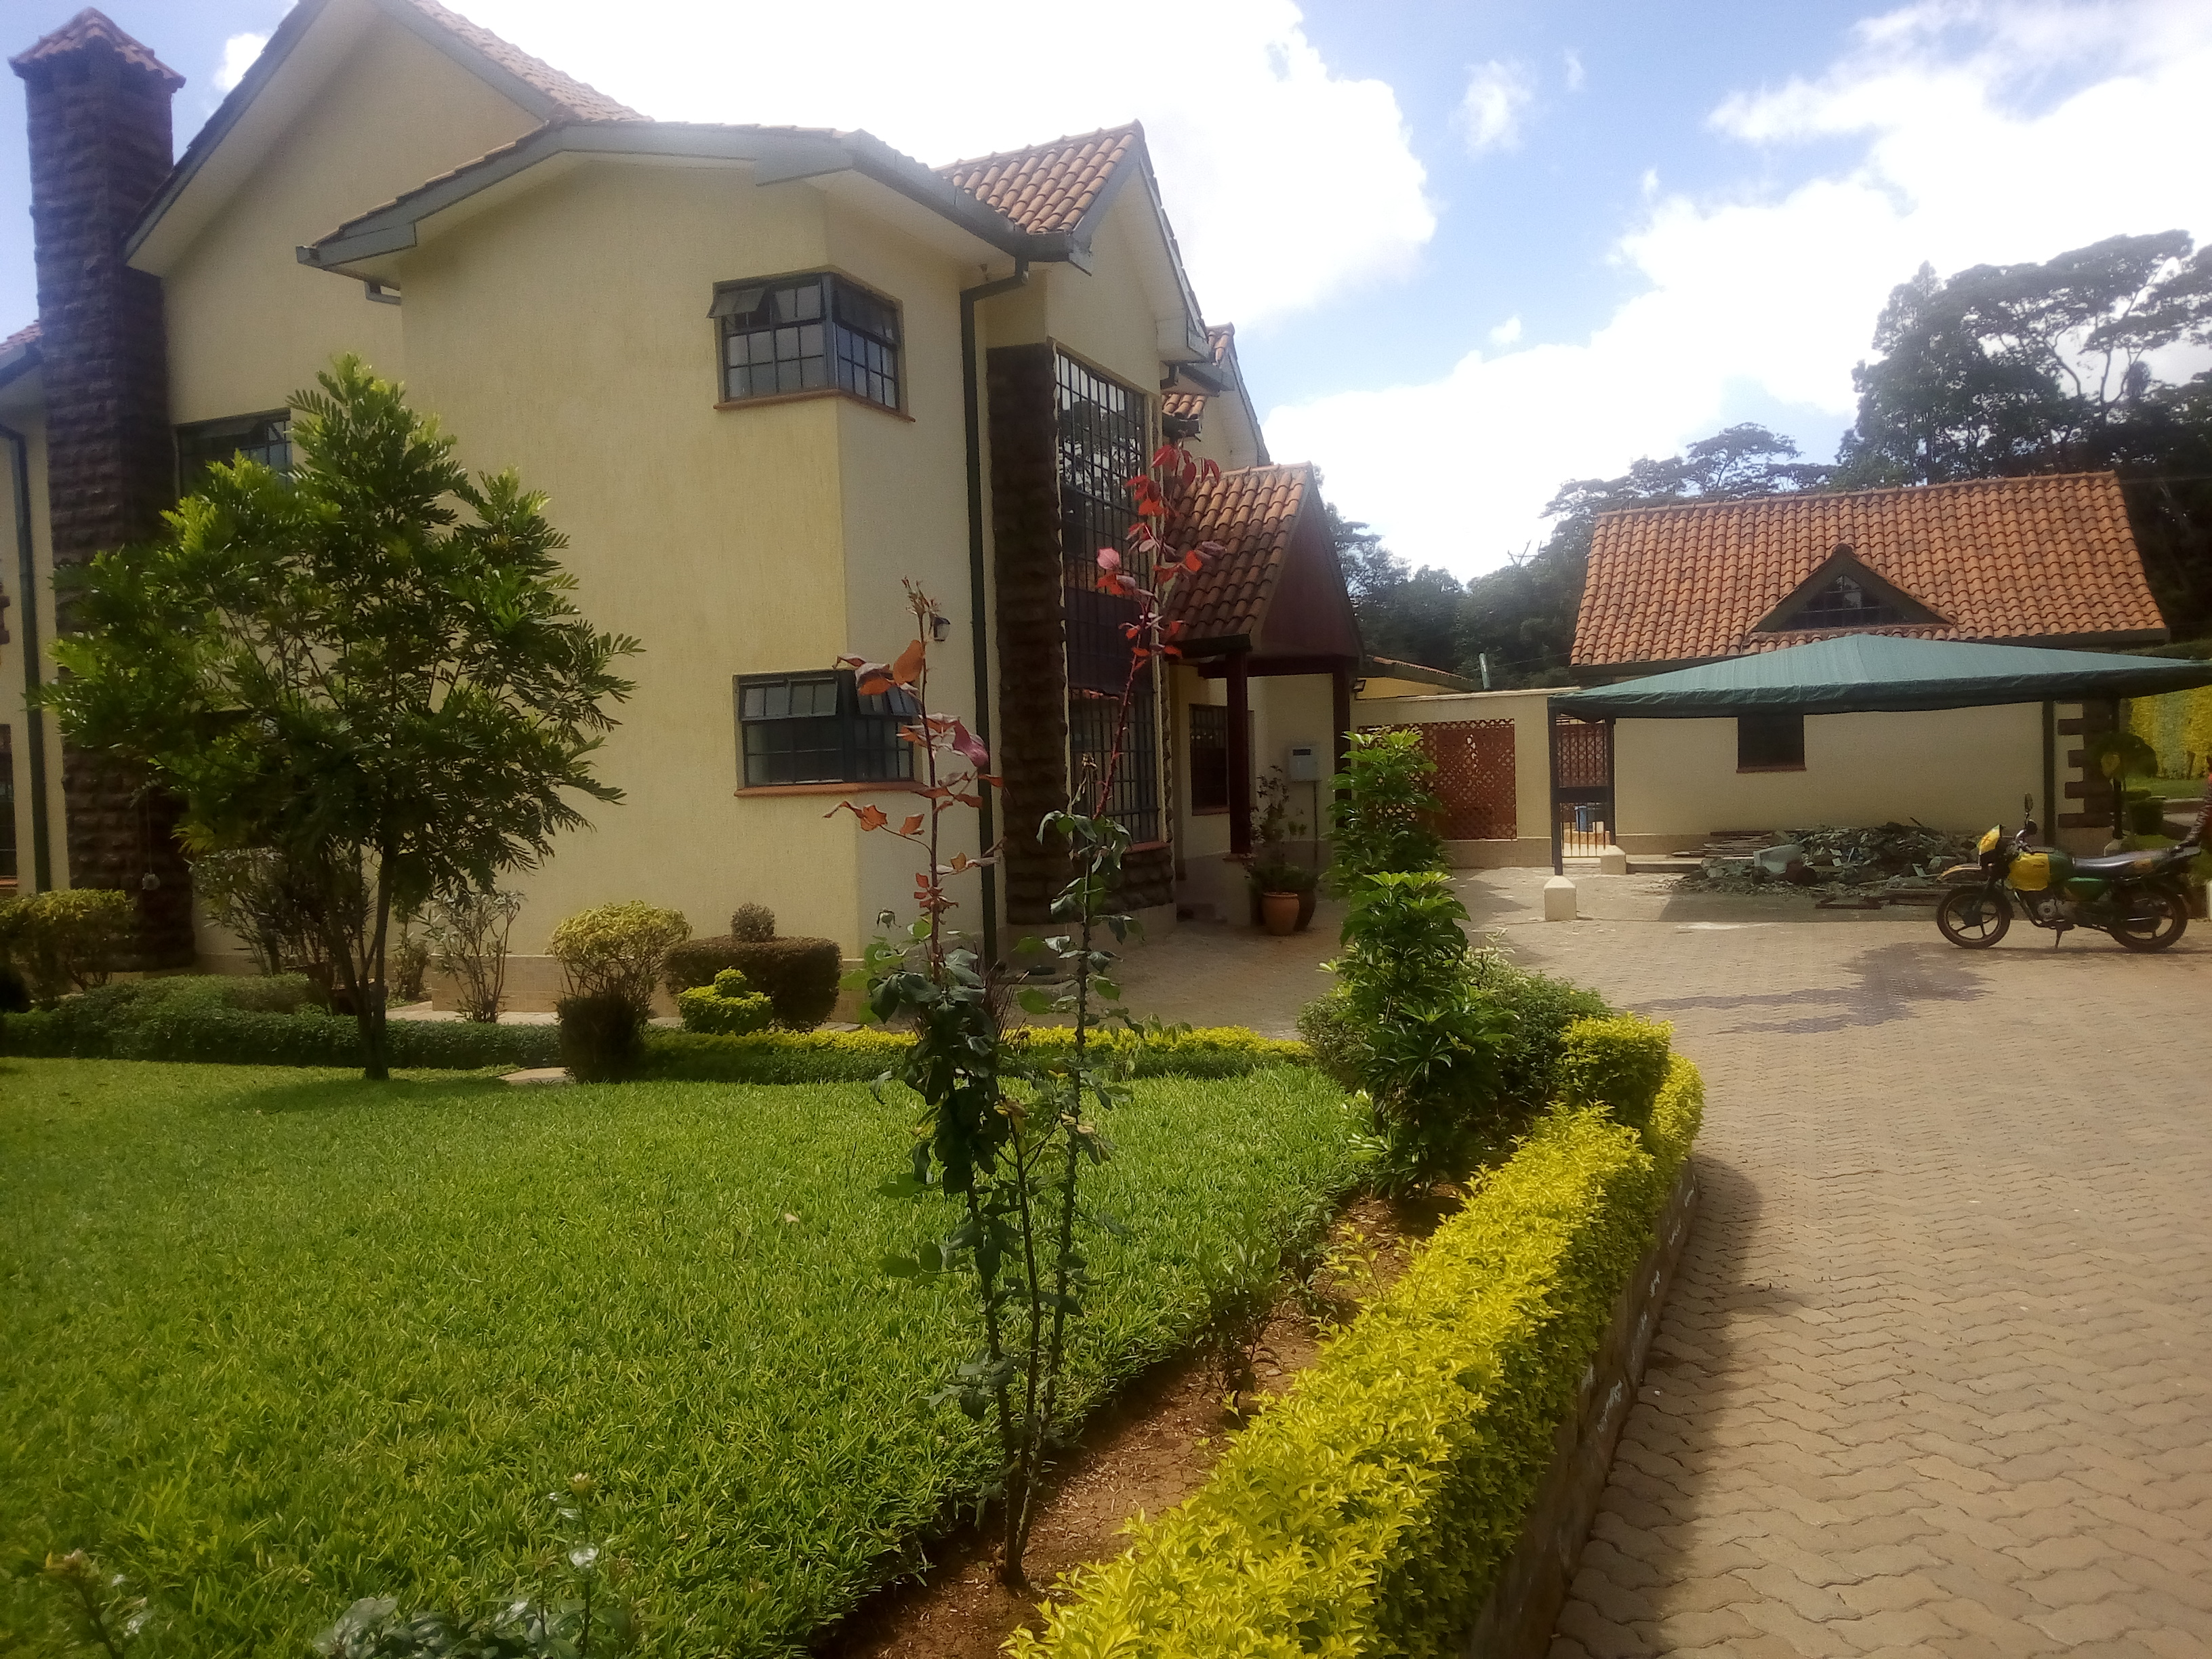 4 bedroom house with a dsq for sale in Karen